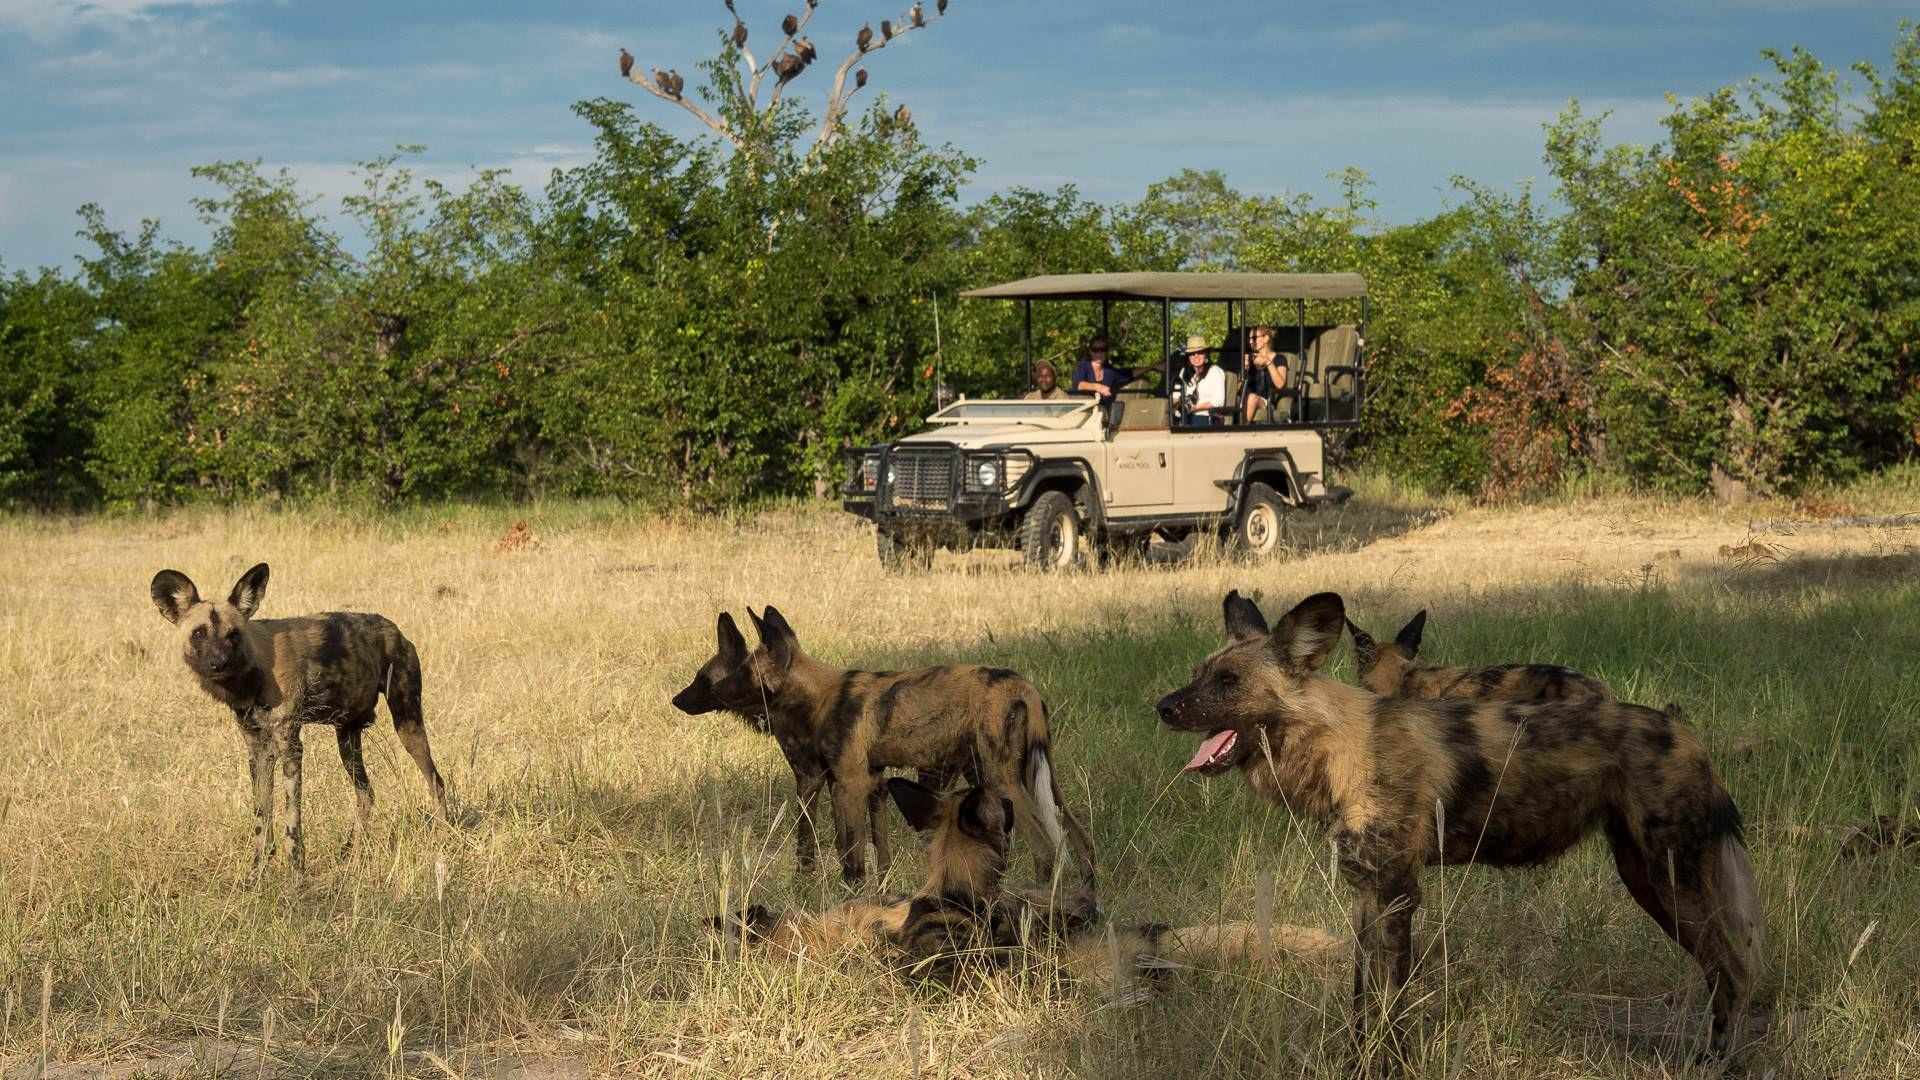 Wildogs on safari with Kings pool in Linyanti